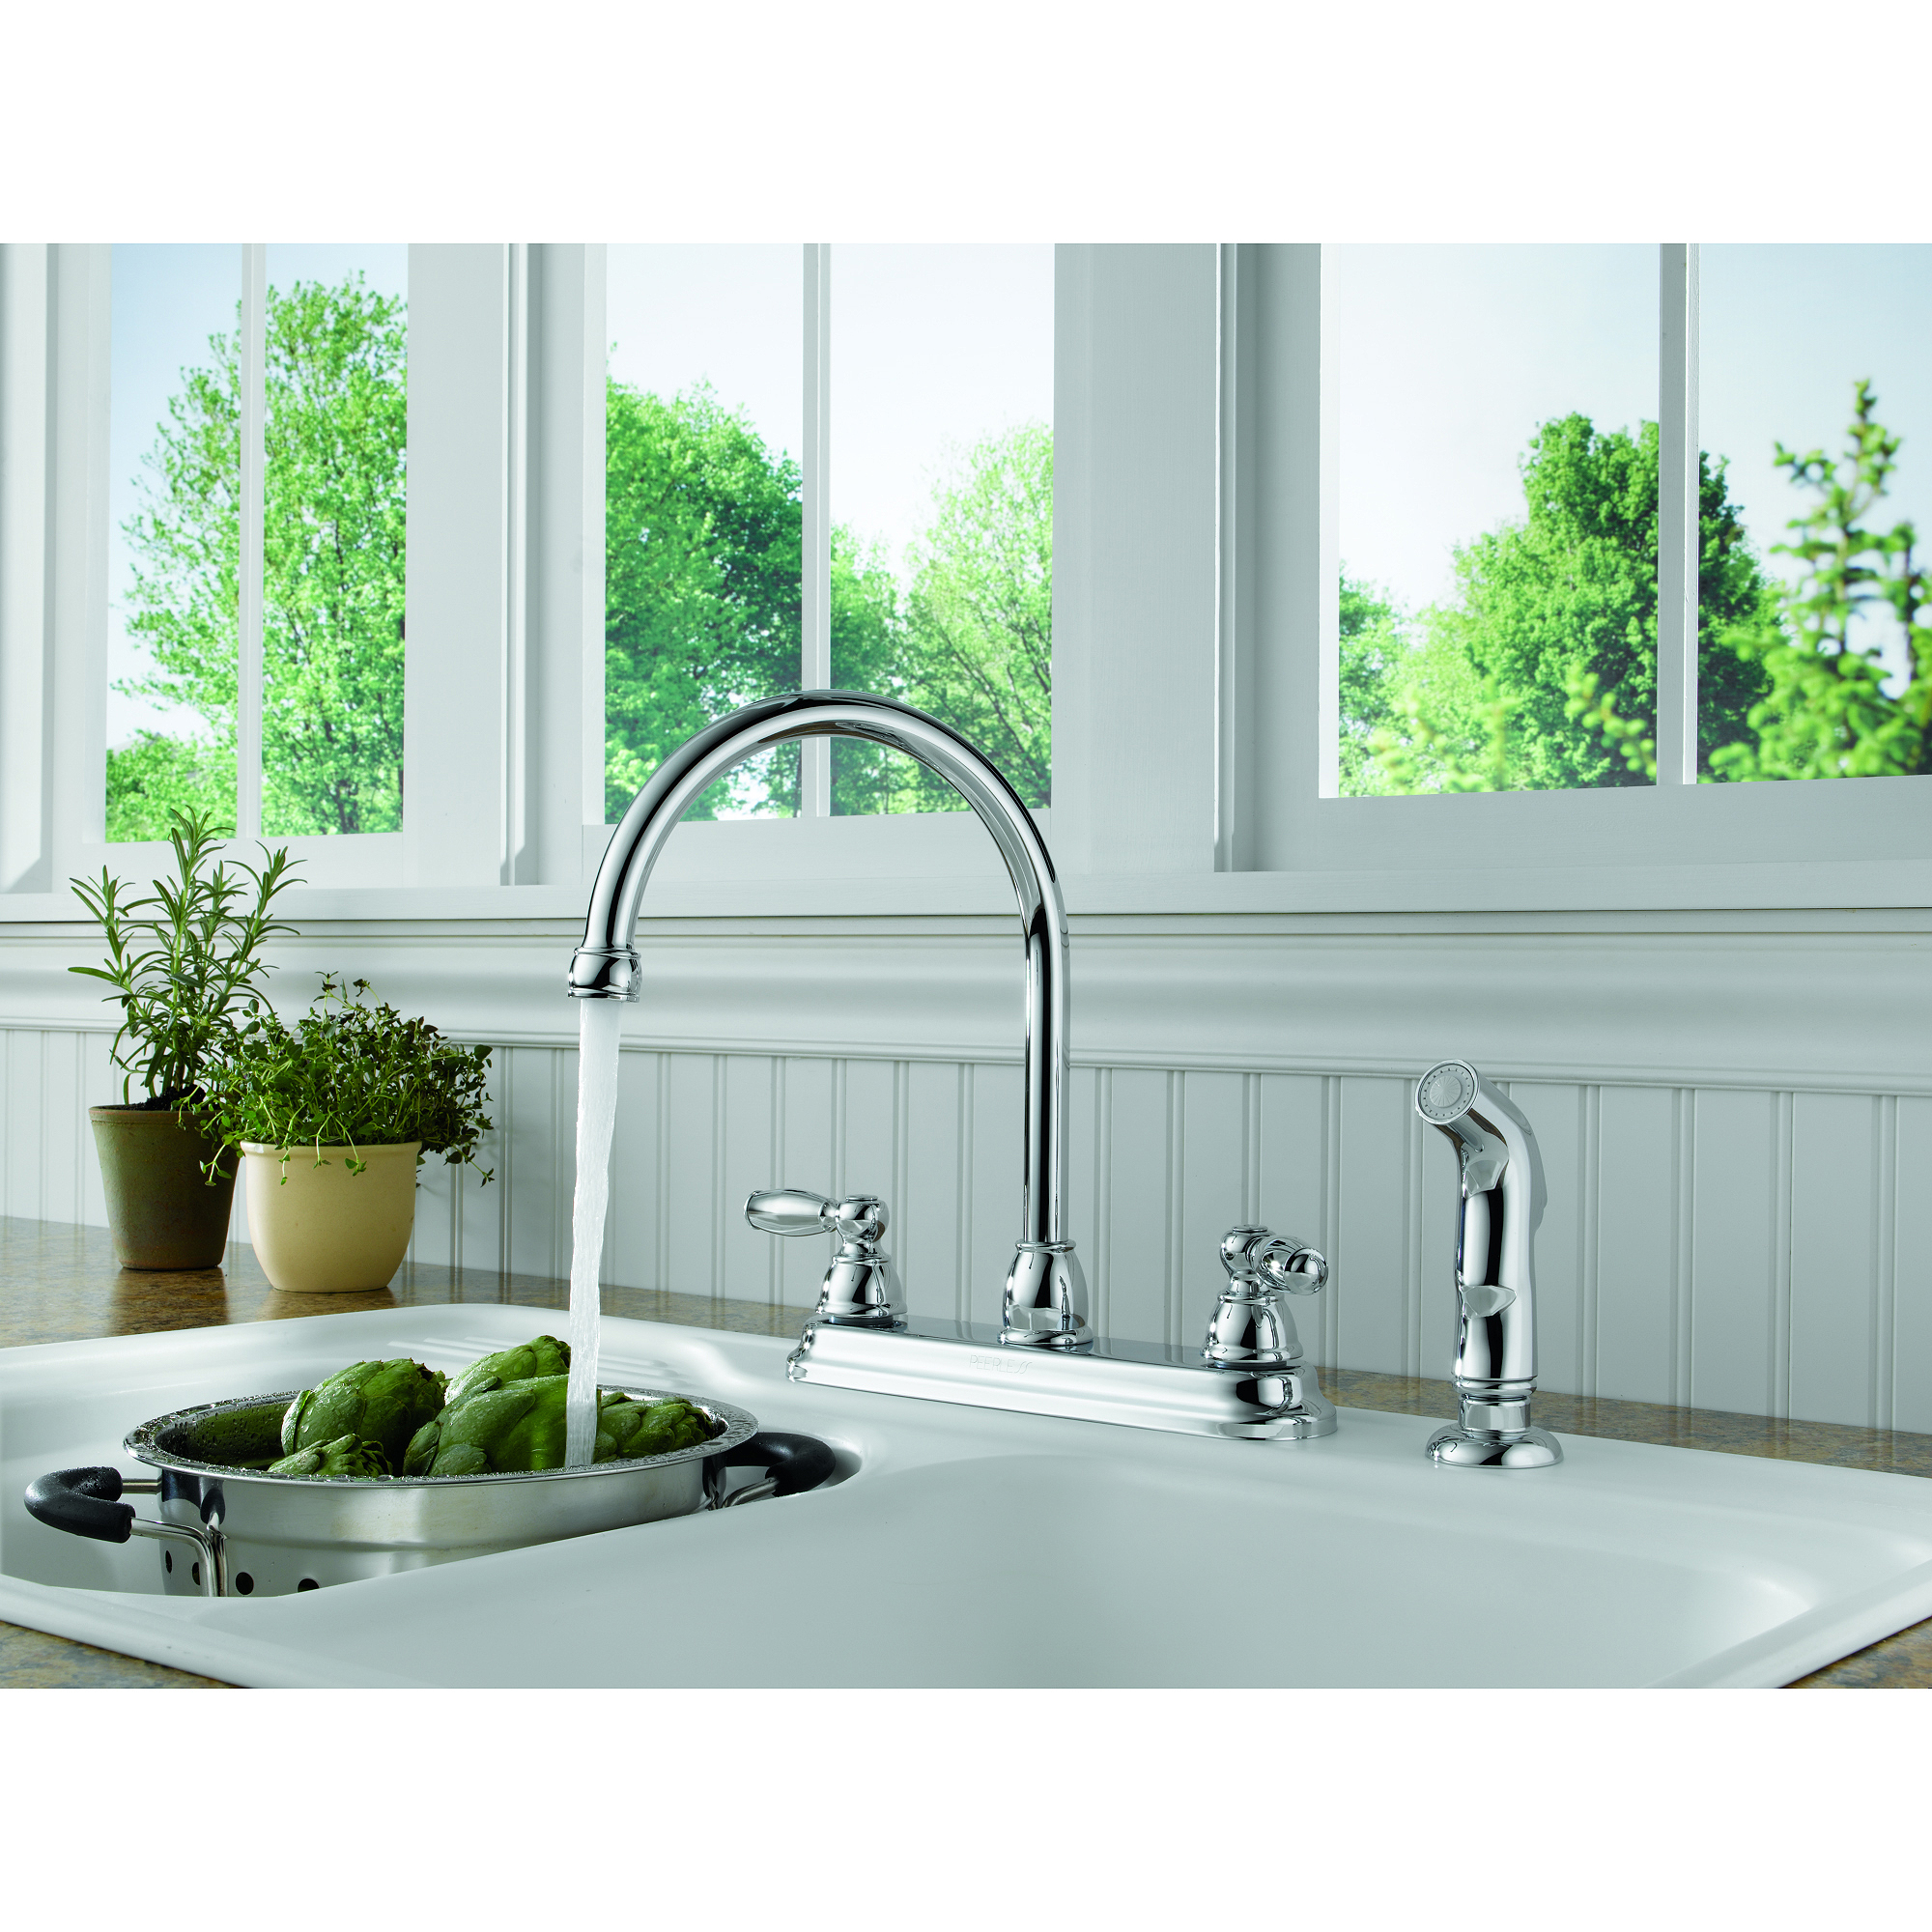 peerless two handle kitchen faucet with side sprayer delta 2497lf cz champagne bronze two handle kitchen faucet